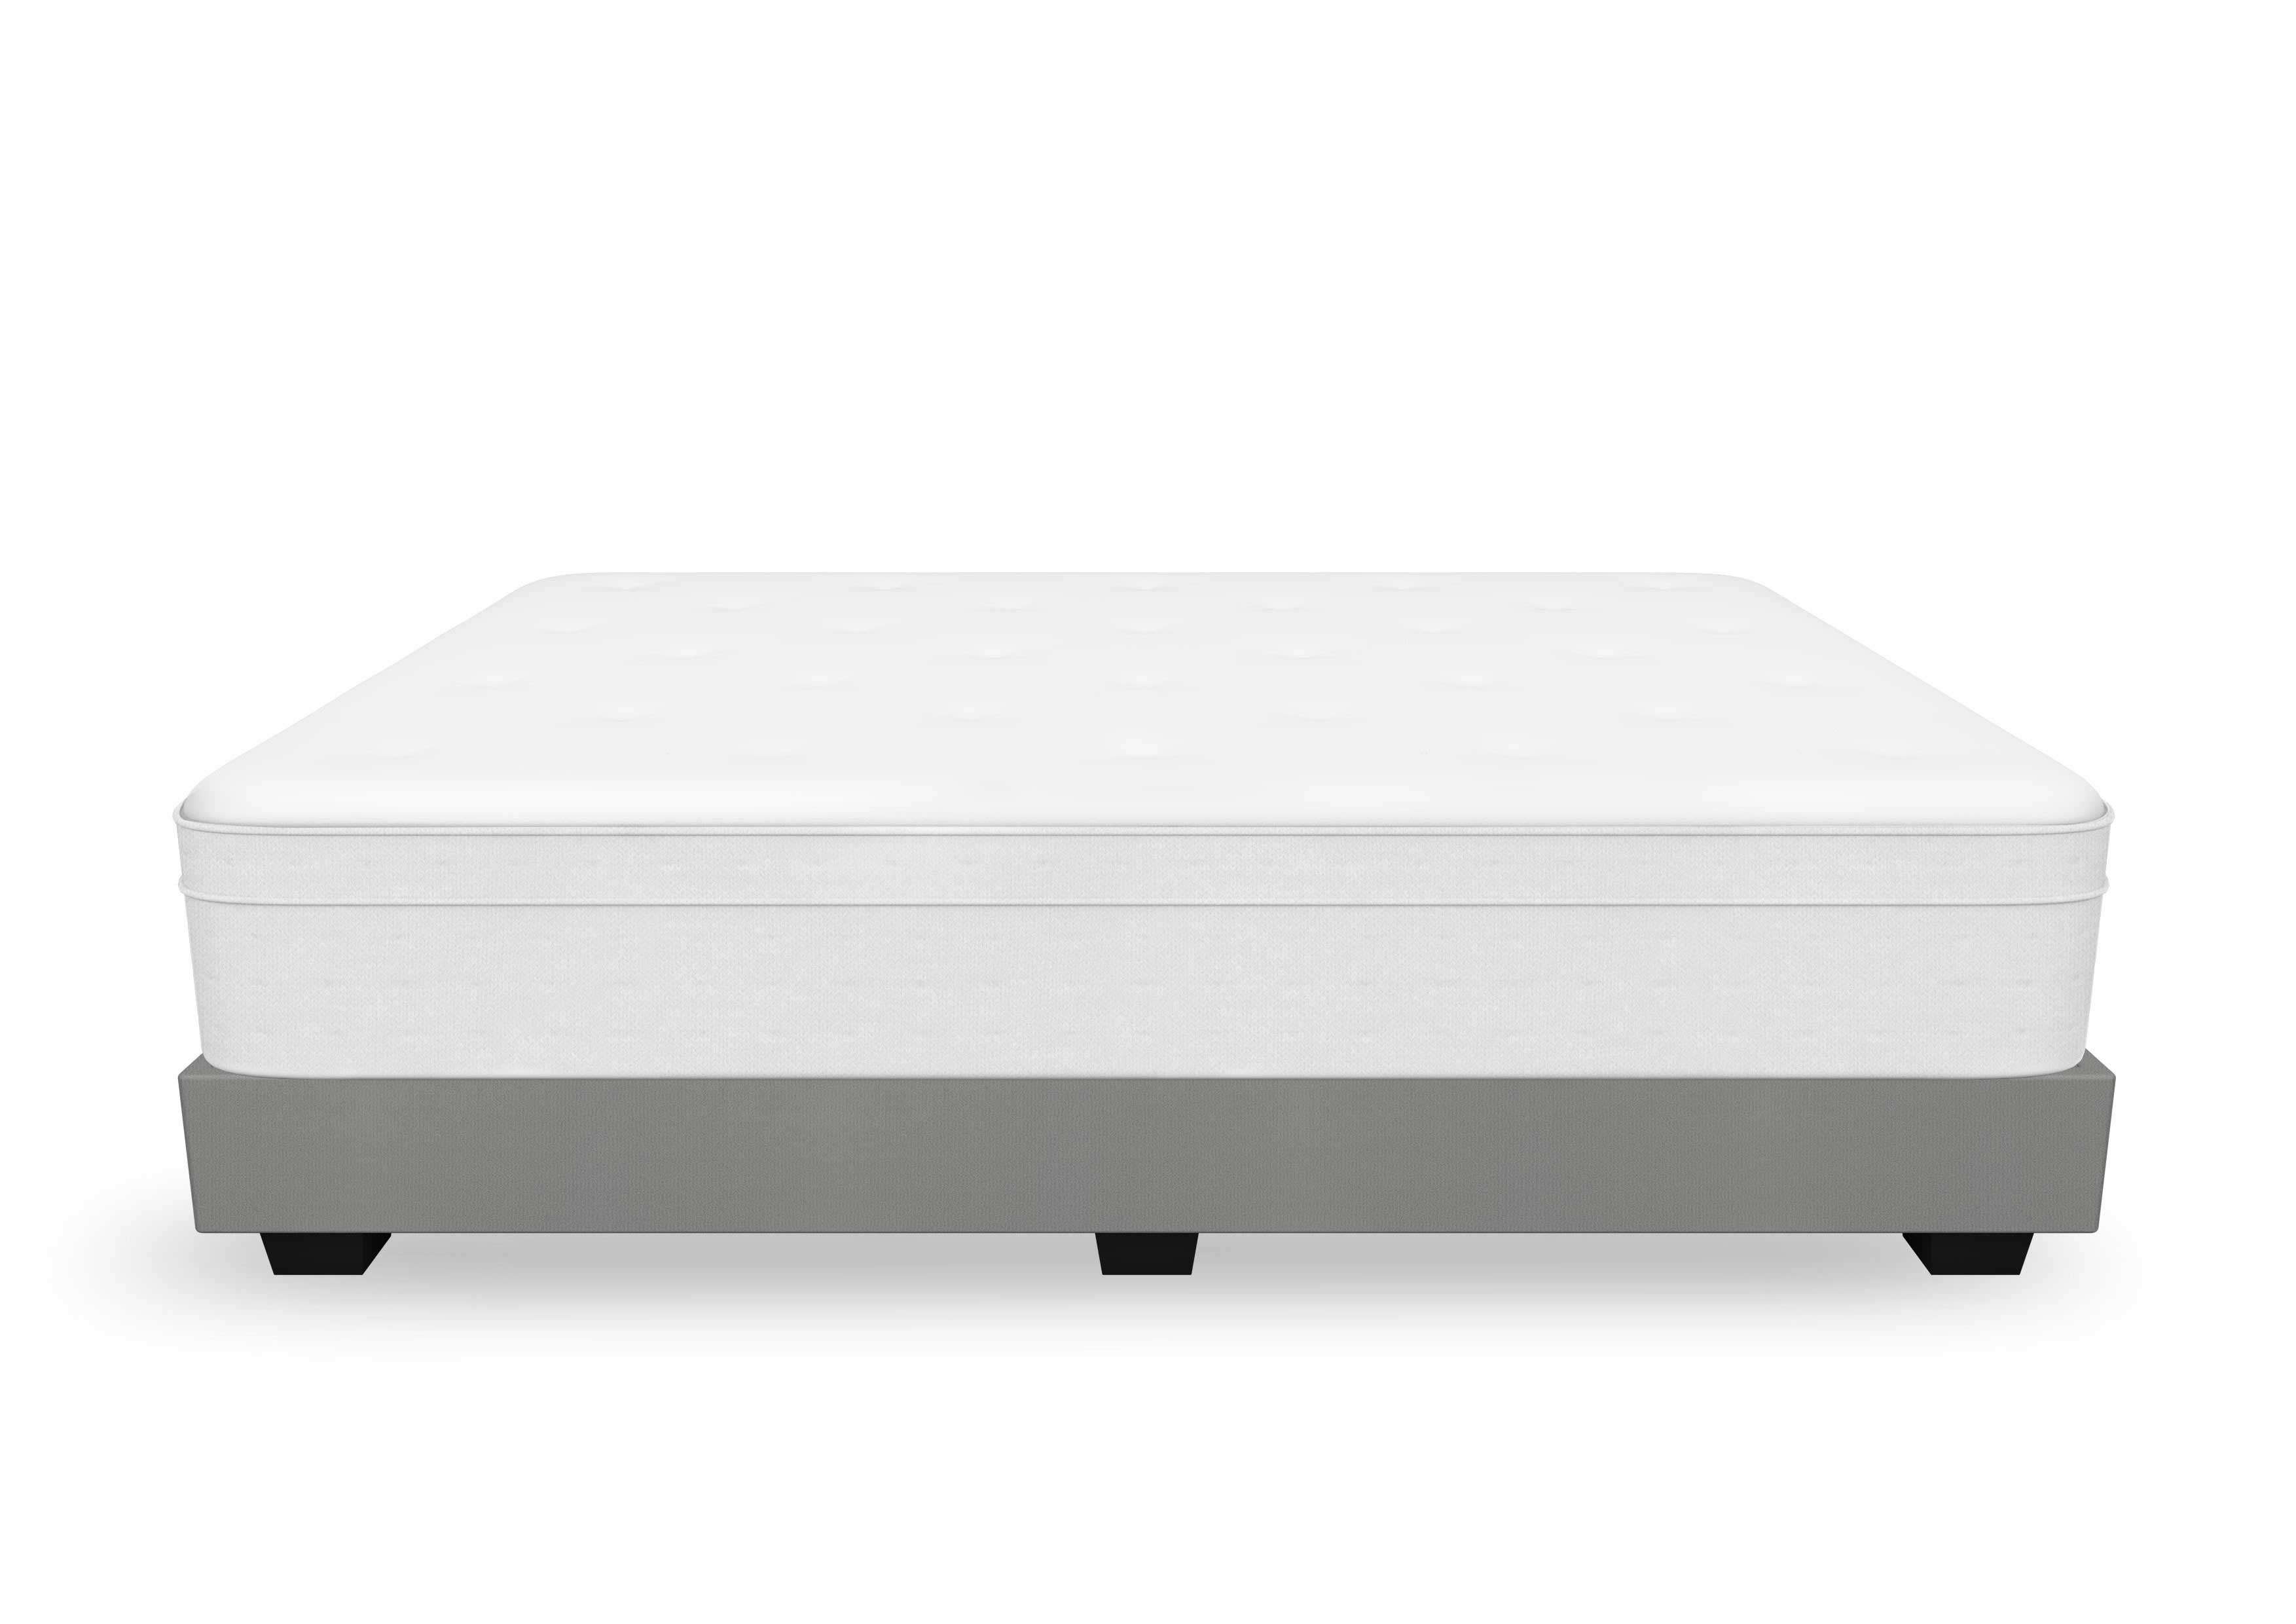 purchase mattresses how me prices anyone img craigslist over made one bed has sleep number